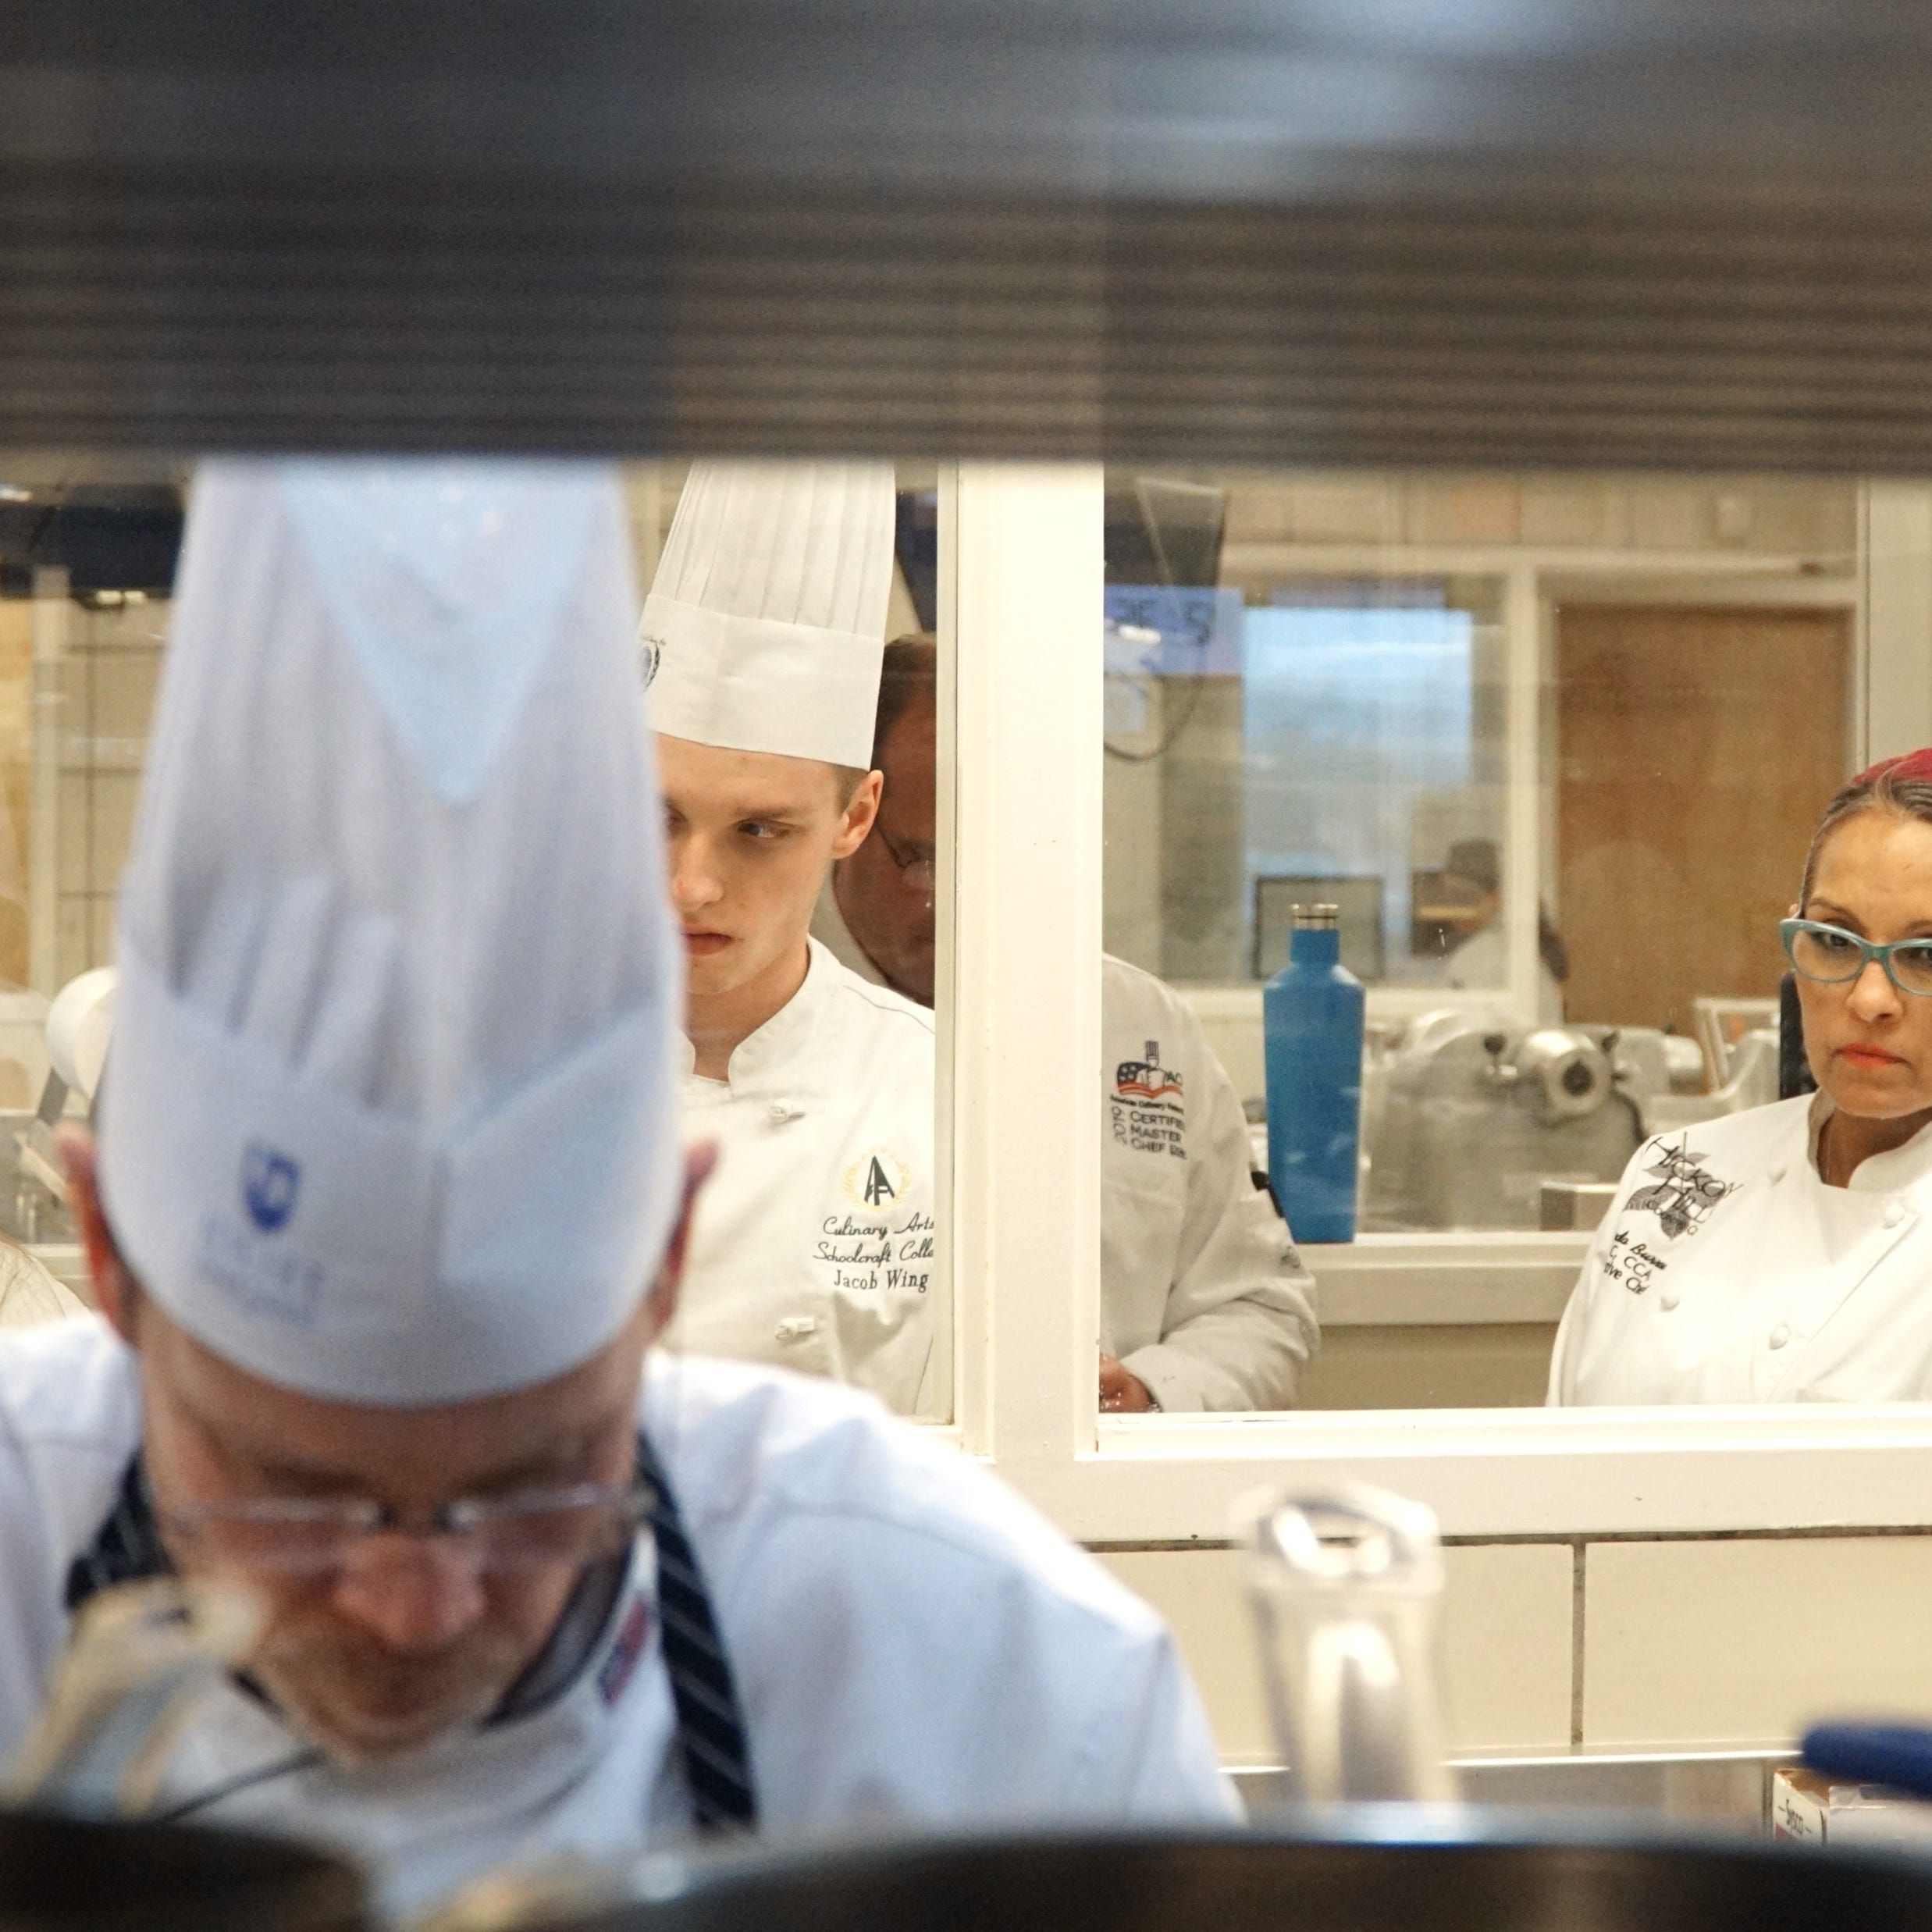 Take a peek inside the kitchen for the Certified Master Chef exam at Schoolcraft College